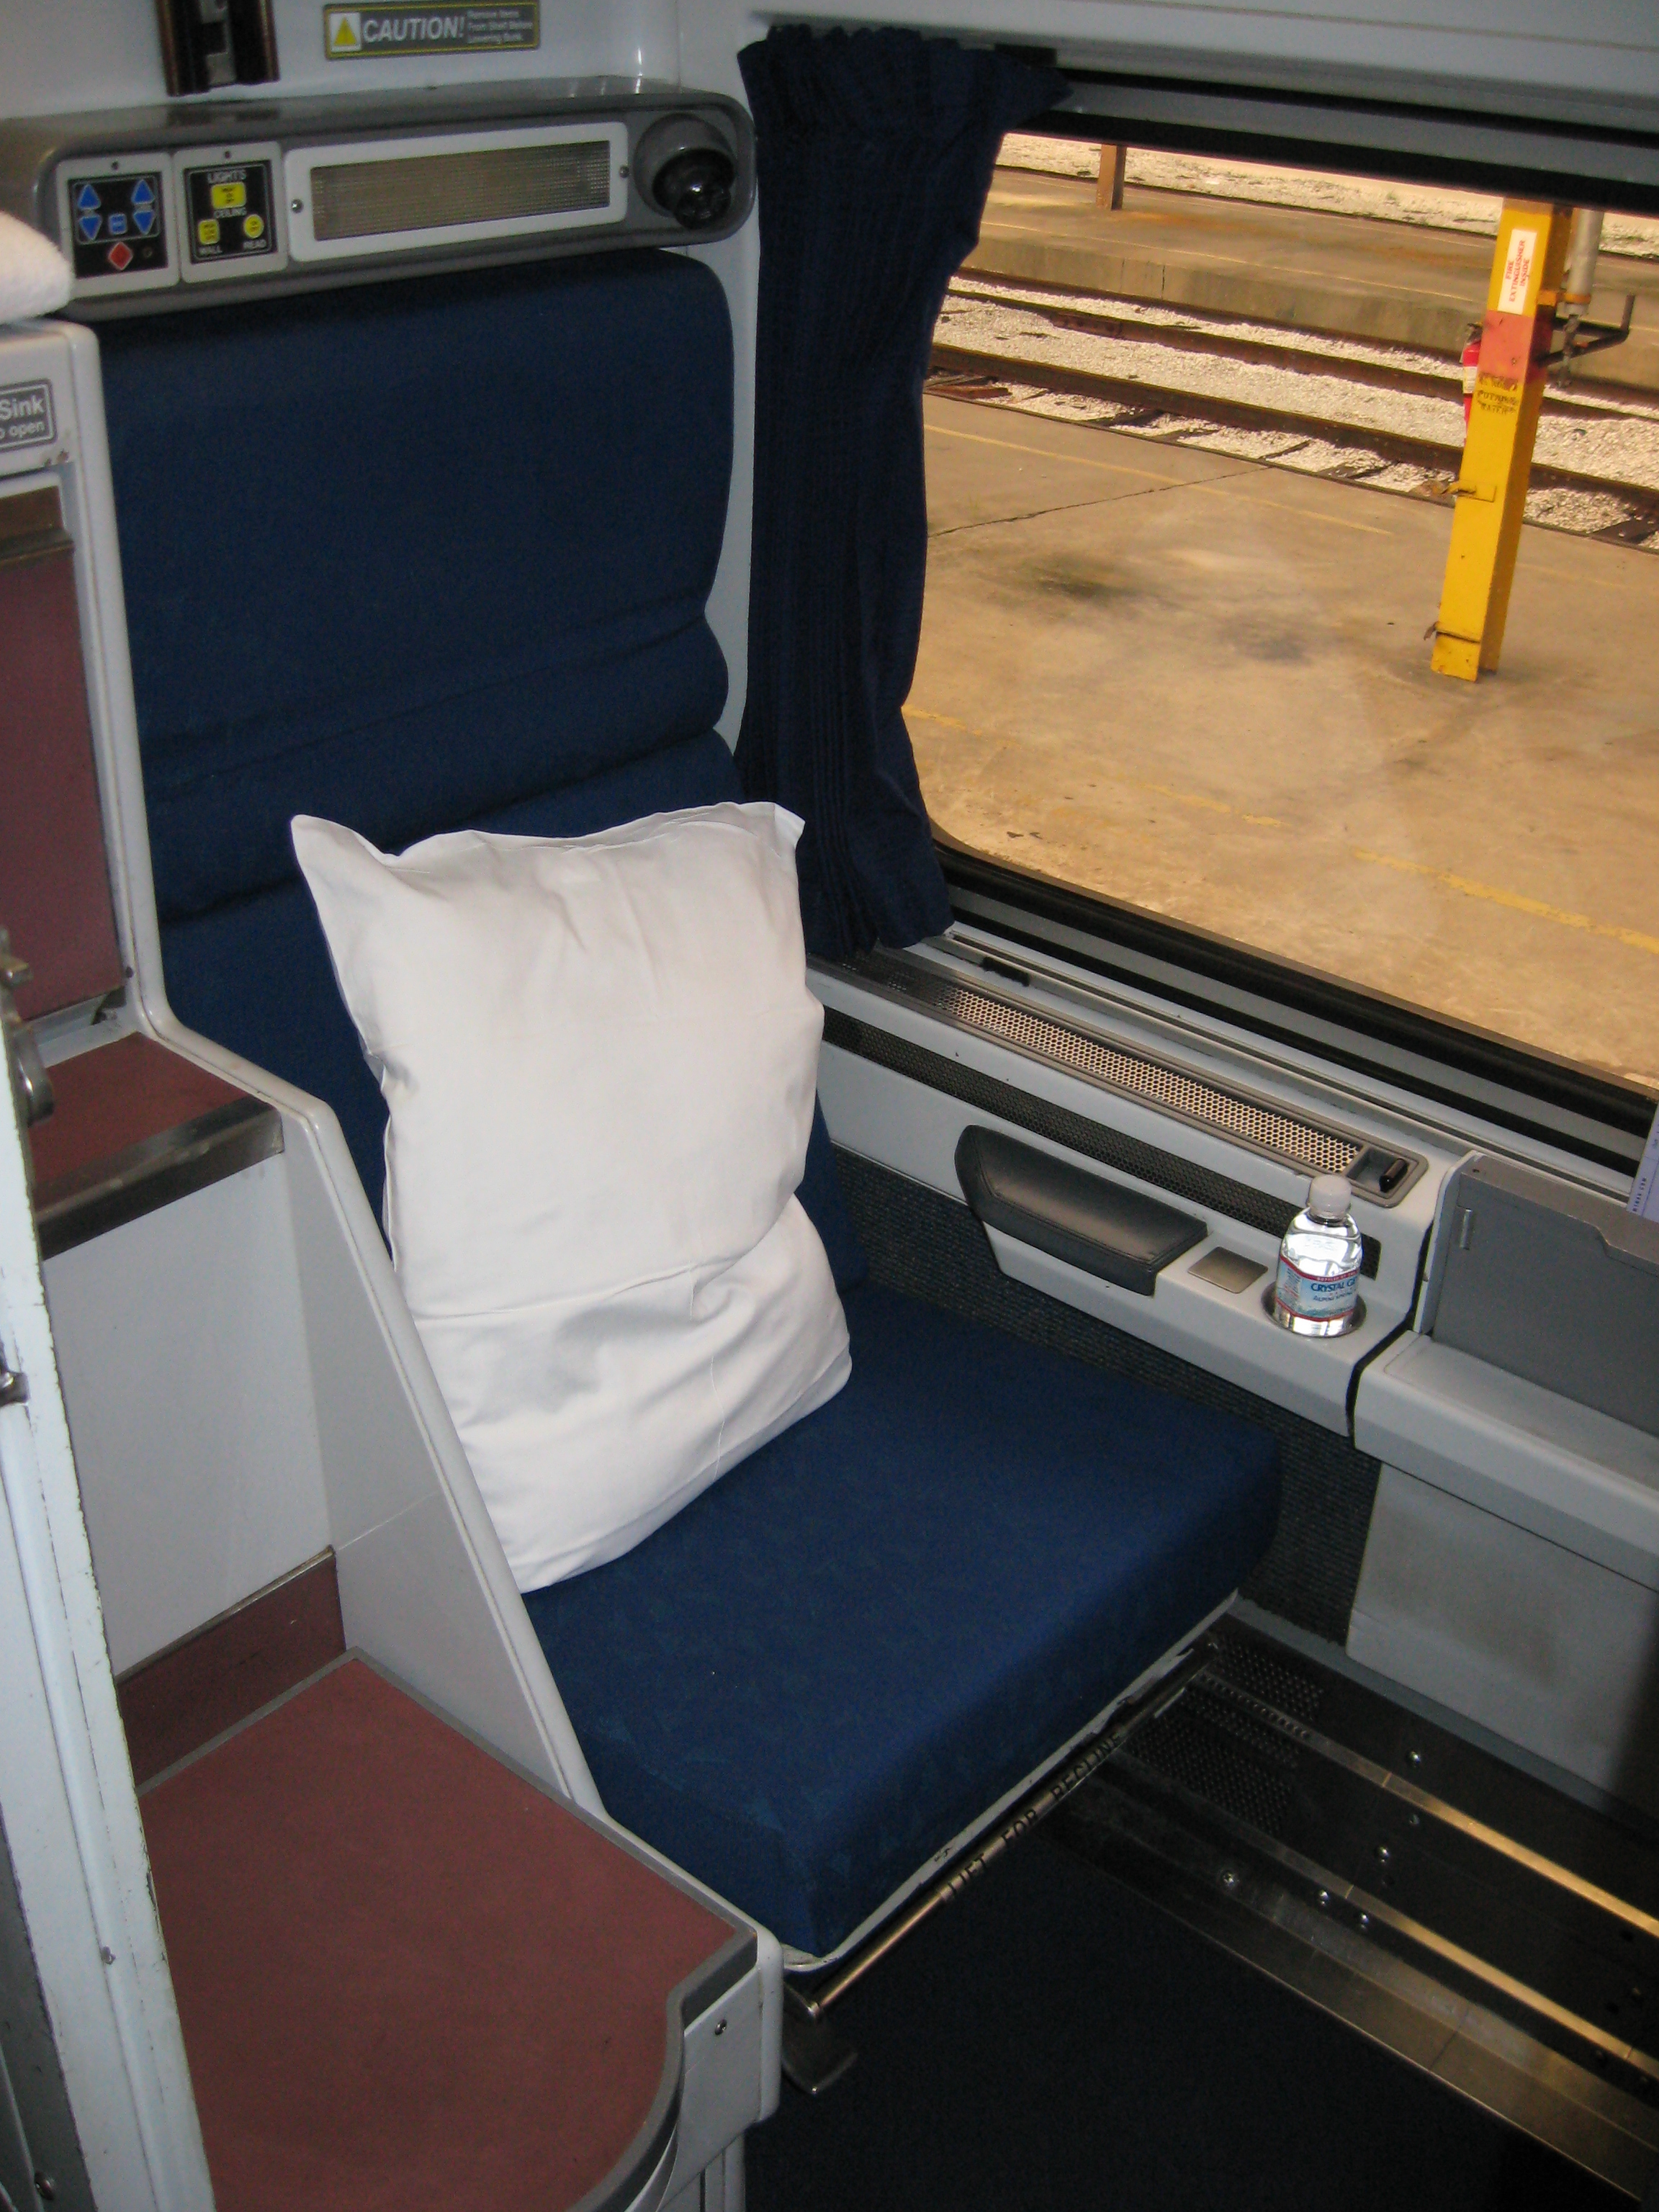 viewliner sleepers have real pluses trains travel with jim loomis. Black Bedroom Furniture Sets. Home Design Ideas